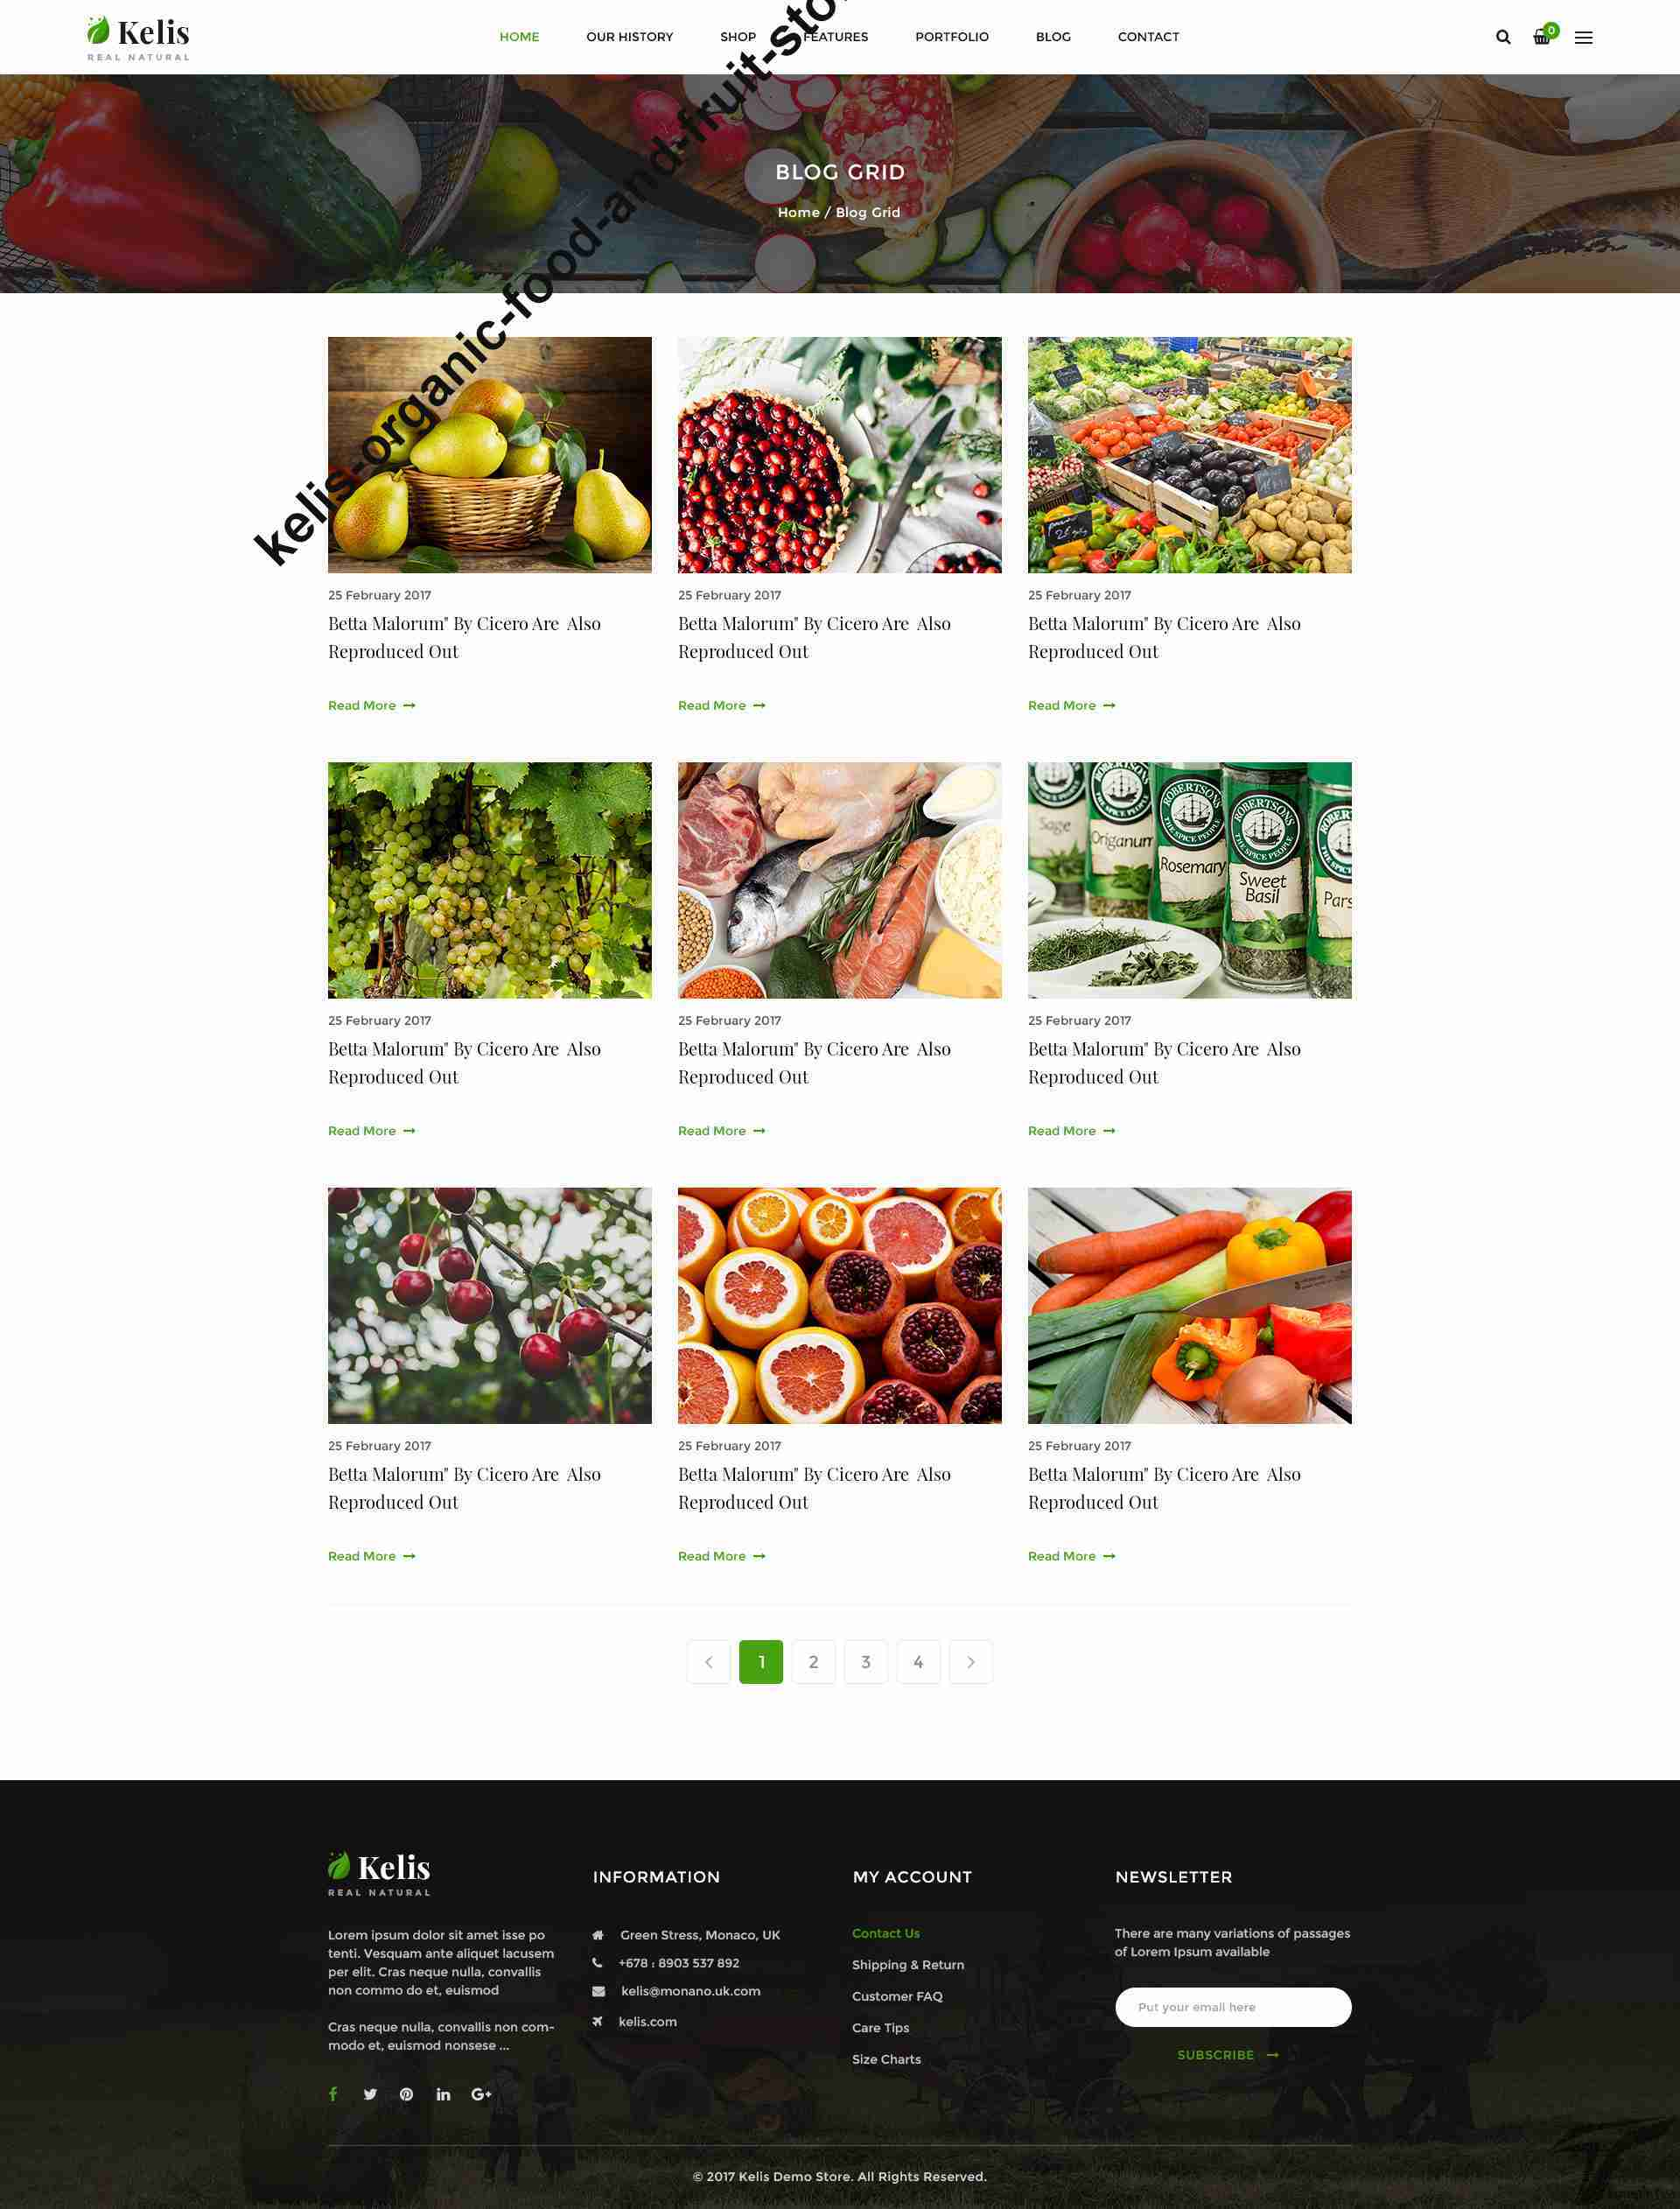 https://images.besthemes.com/images/h1_kelis-organic-food-and-fruit-store-ecommerce-shopify-theme9-_-234864139/Theme-s20s-Preview/08_Blog_Grid.jpg